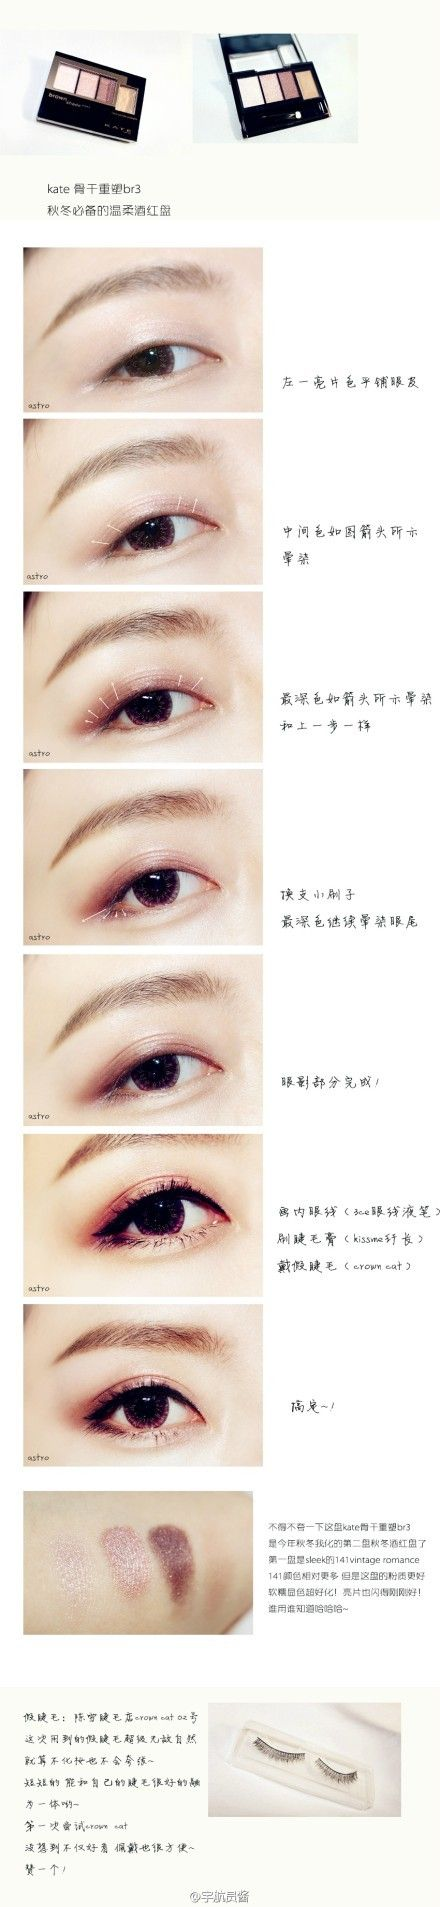 Chinese eye make-up tutorial~